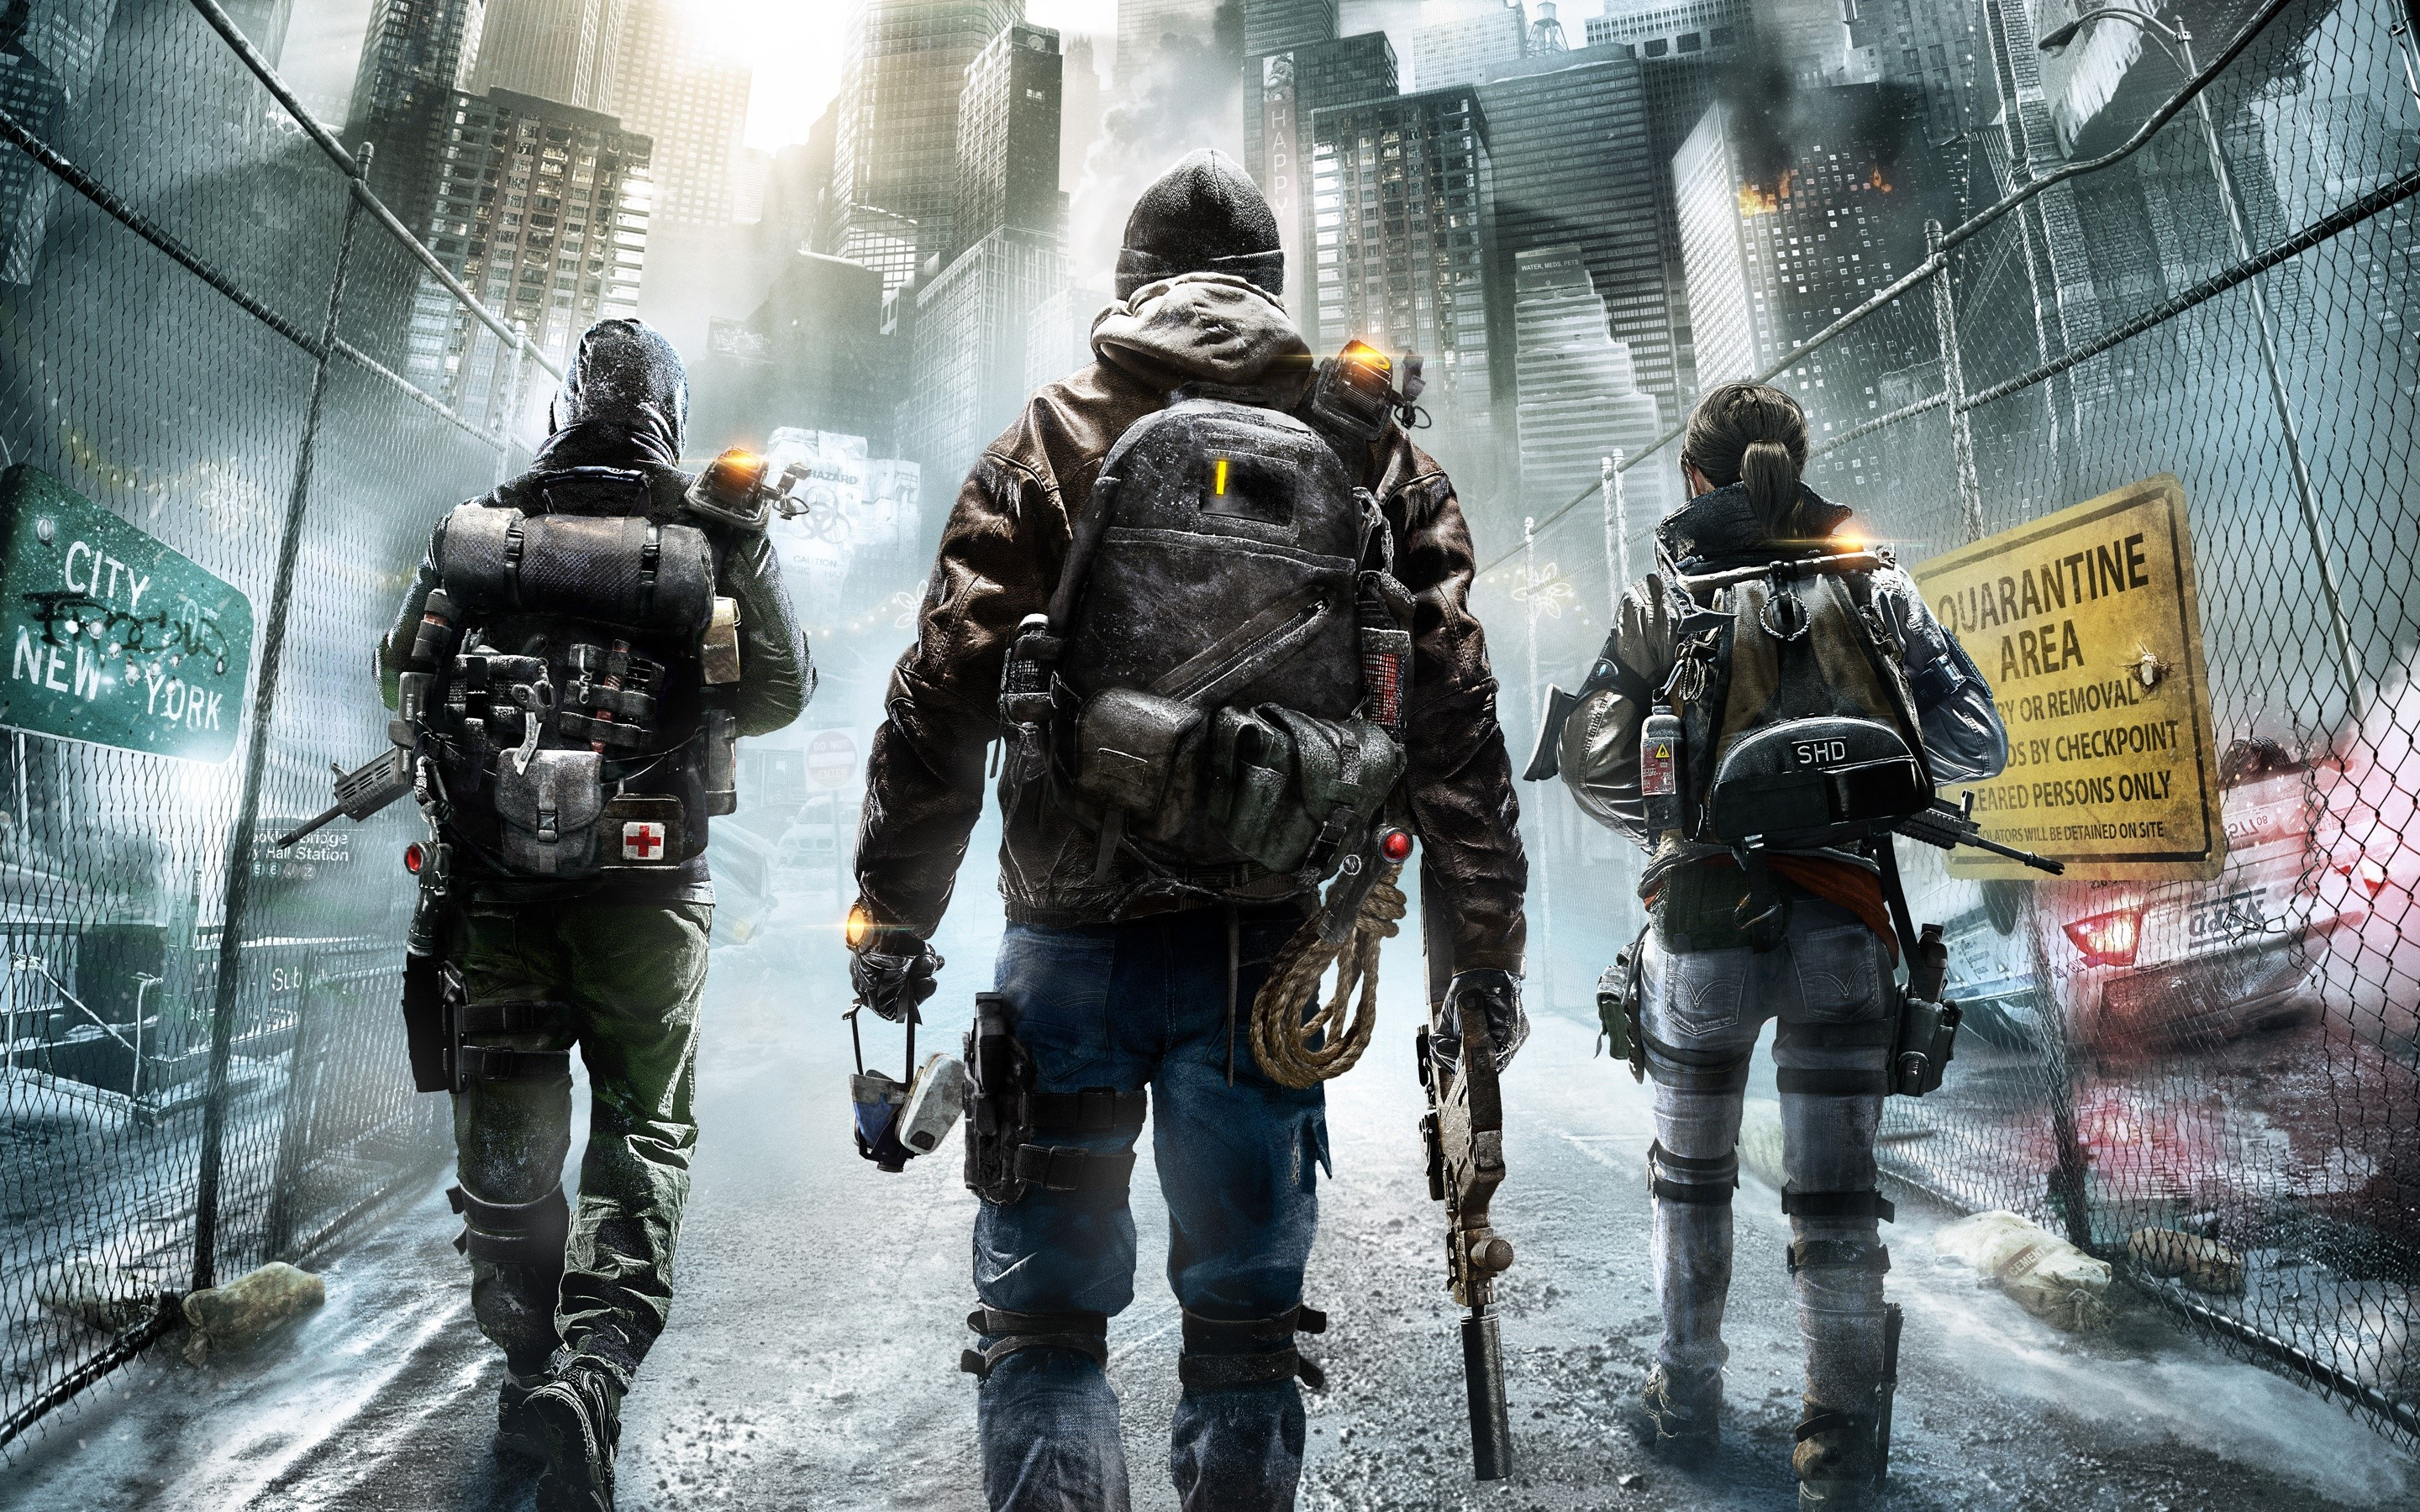 Fondos de pantalla Tom Clancy's: The division 2015